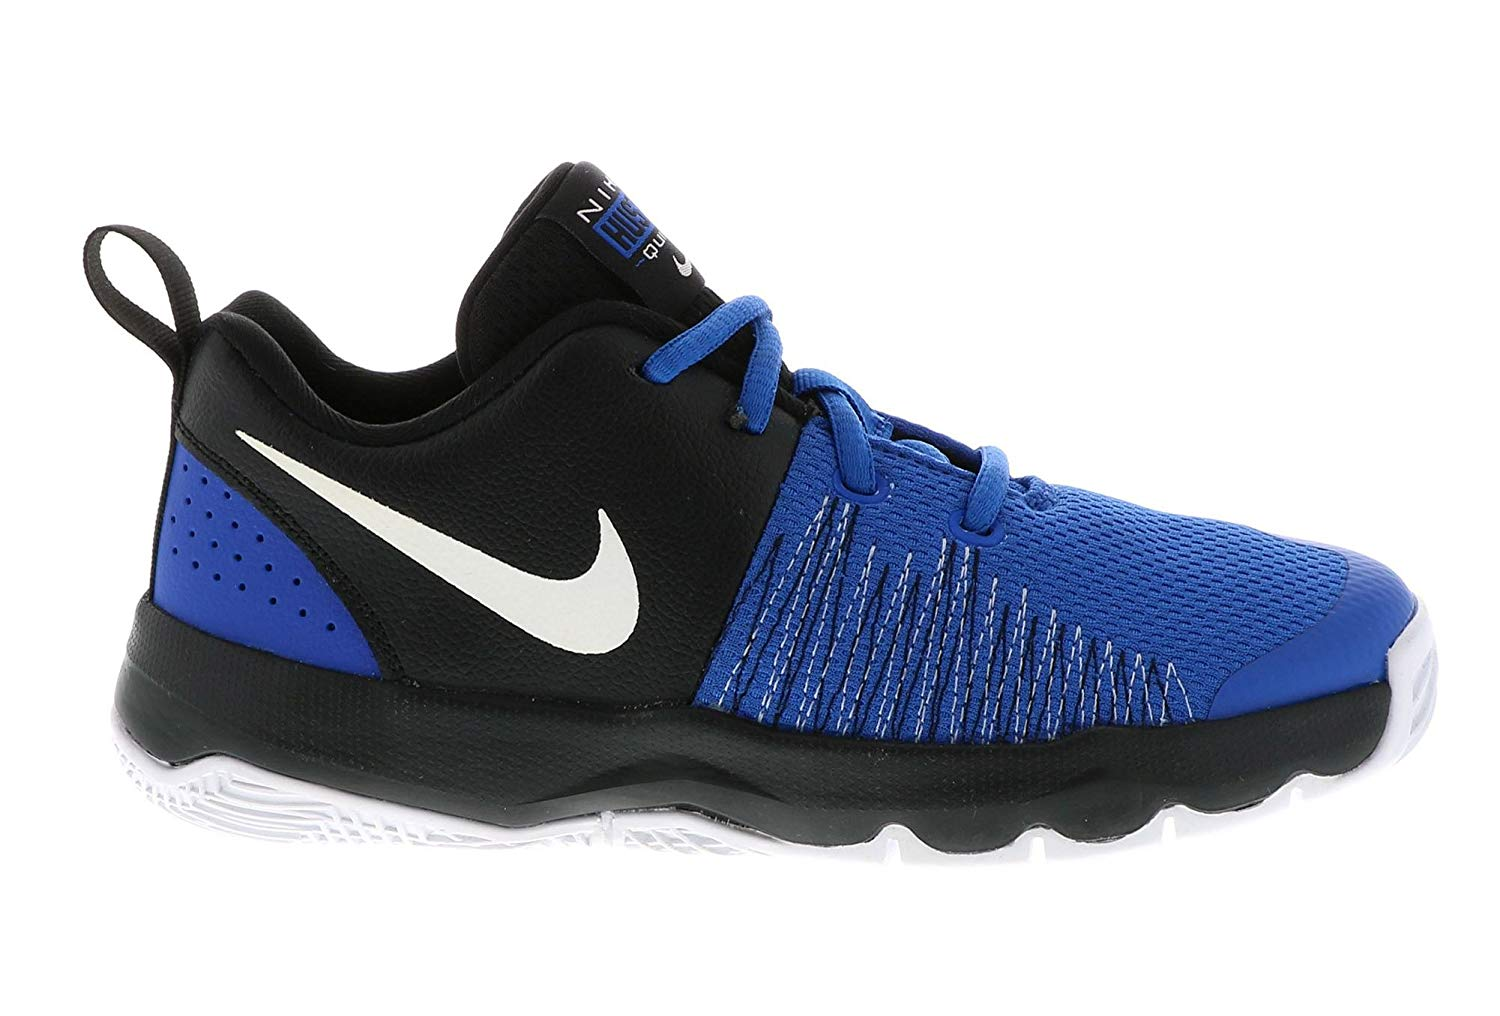 5bedf63edb5d Get Quotations · NIKE Kids  Team Hustle Quick (Ps) Basketball Shoe